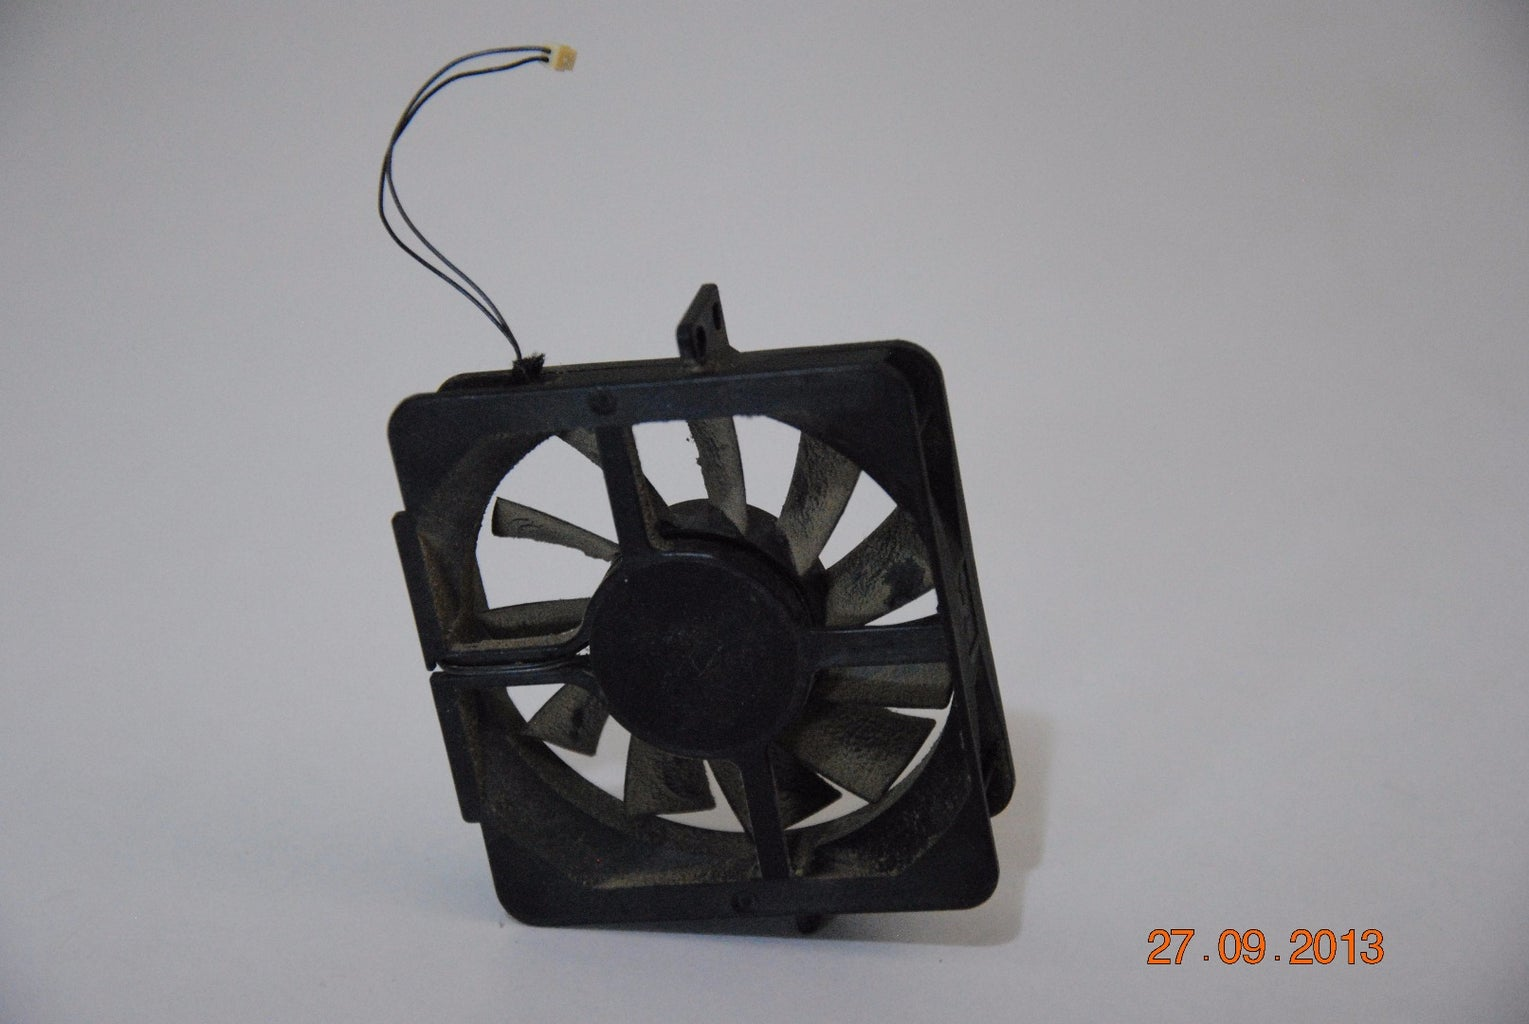 Cooling It Off- Heat-Sinks, a Fan, and Thermal Conducting Pads